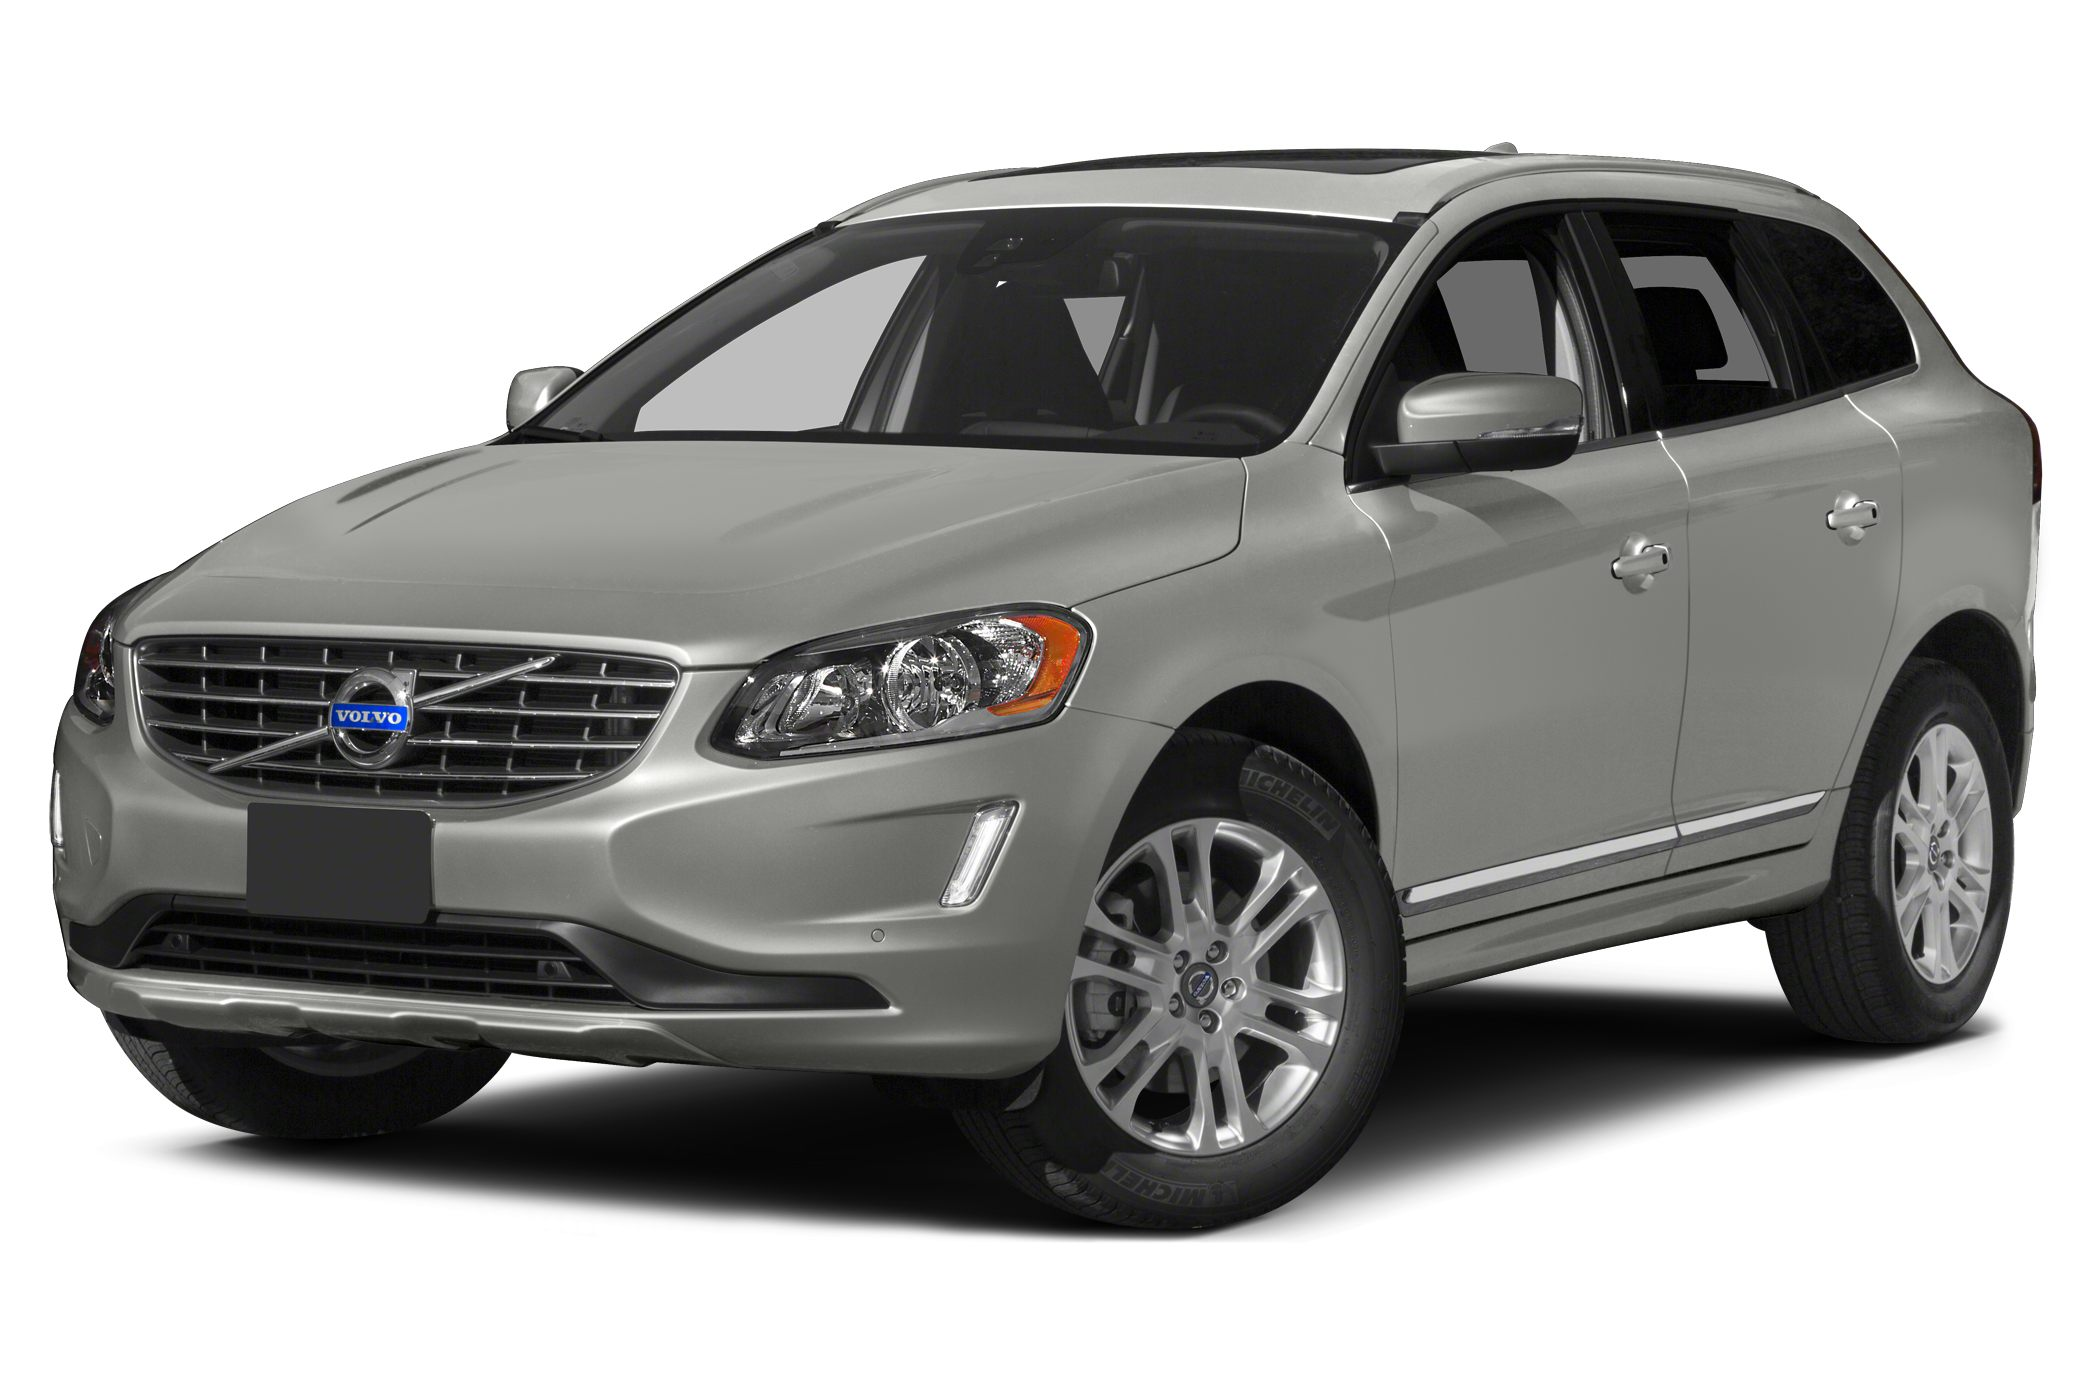 2015 Volvo XC60 T5 Black 2015 Volvo XC60 T5 FWD Automatic with Geartronic Drive-E 20L I4 16V Turb